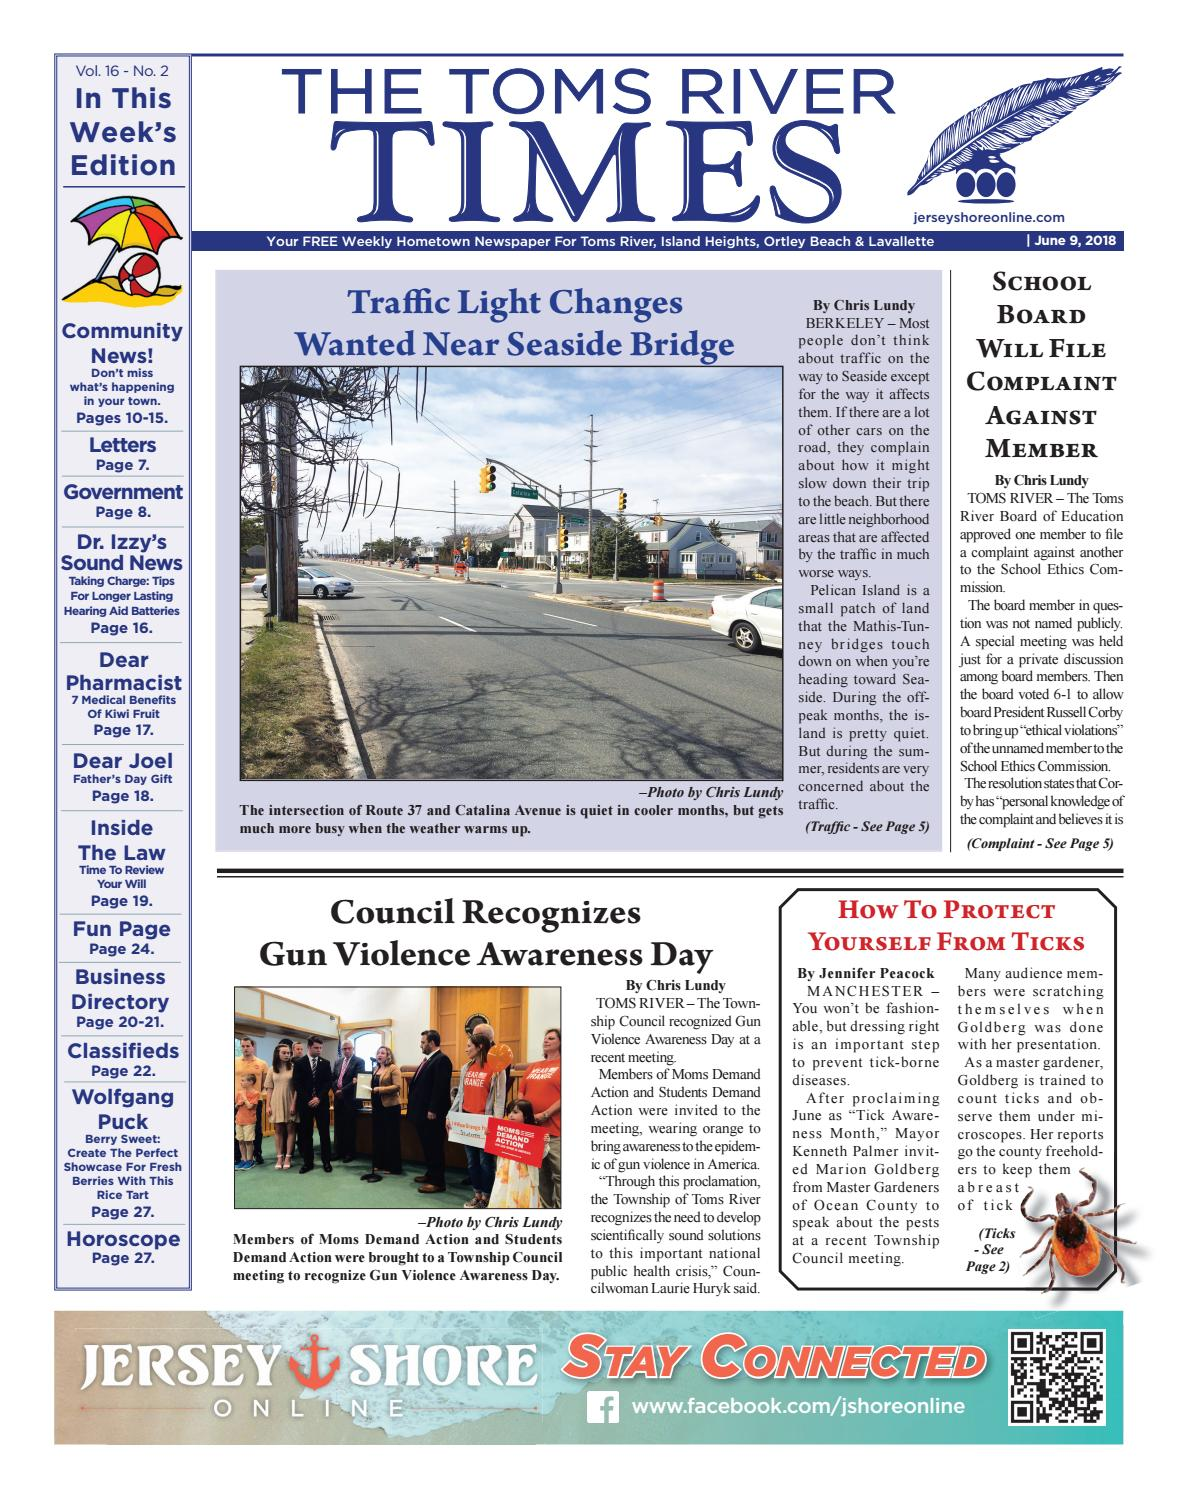 d3289eb36 2018-06-09 - The Toms River Times by Micromedia Publications/Jersey Shore  Online - issuu